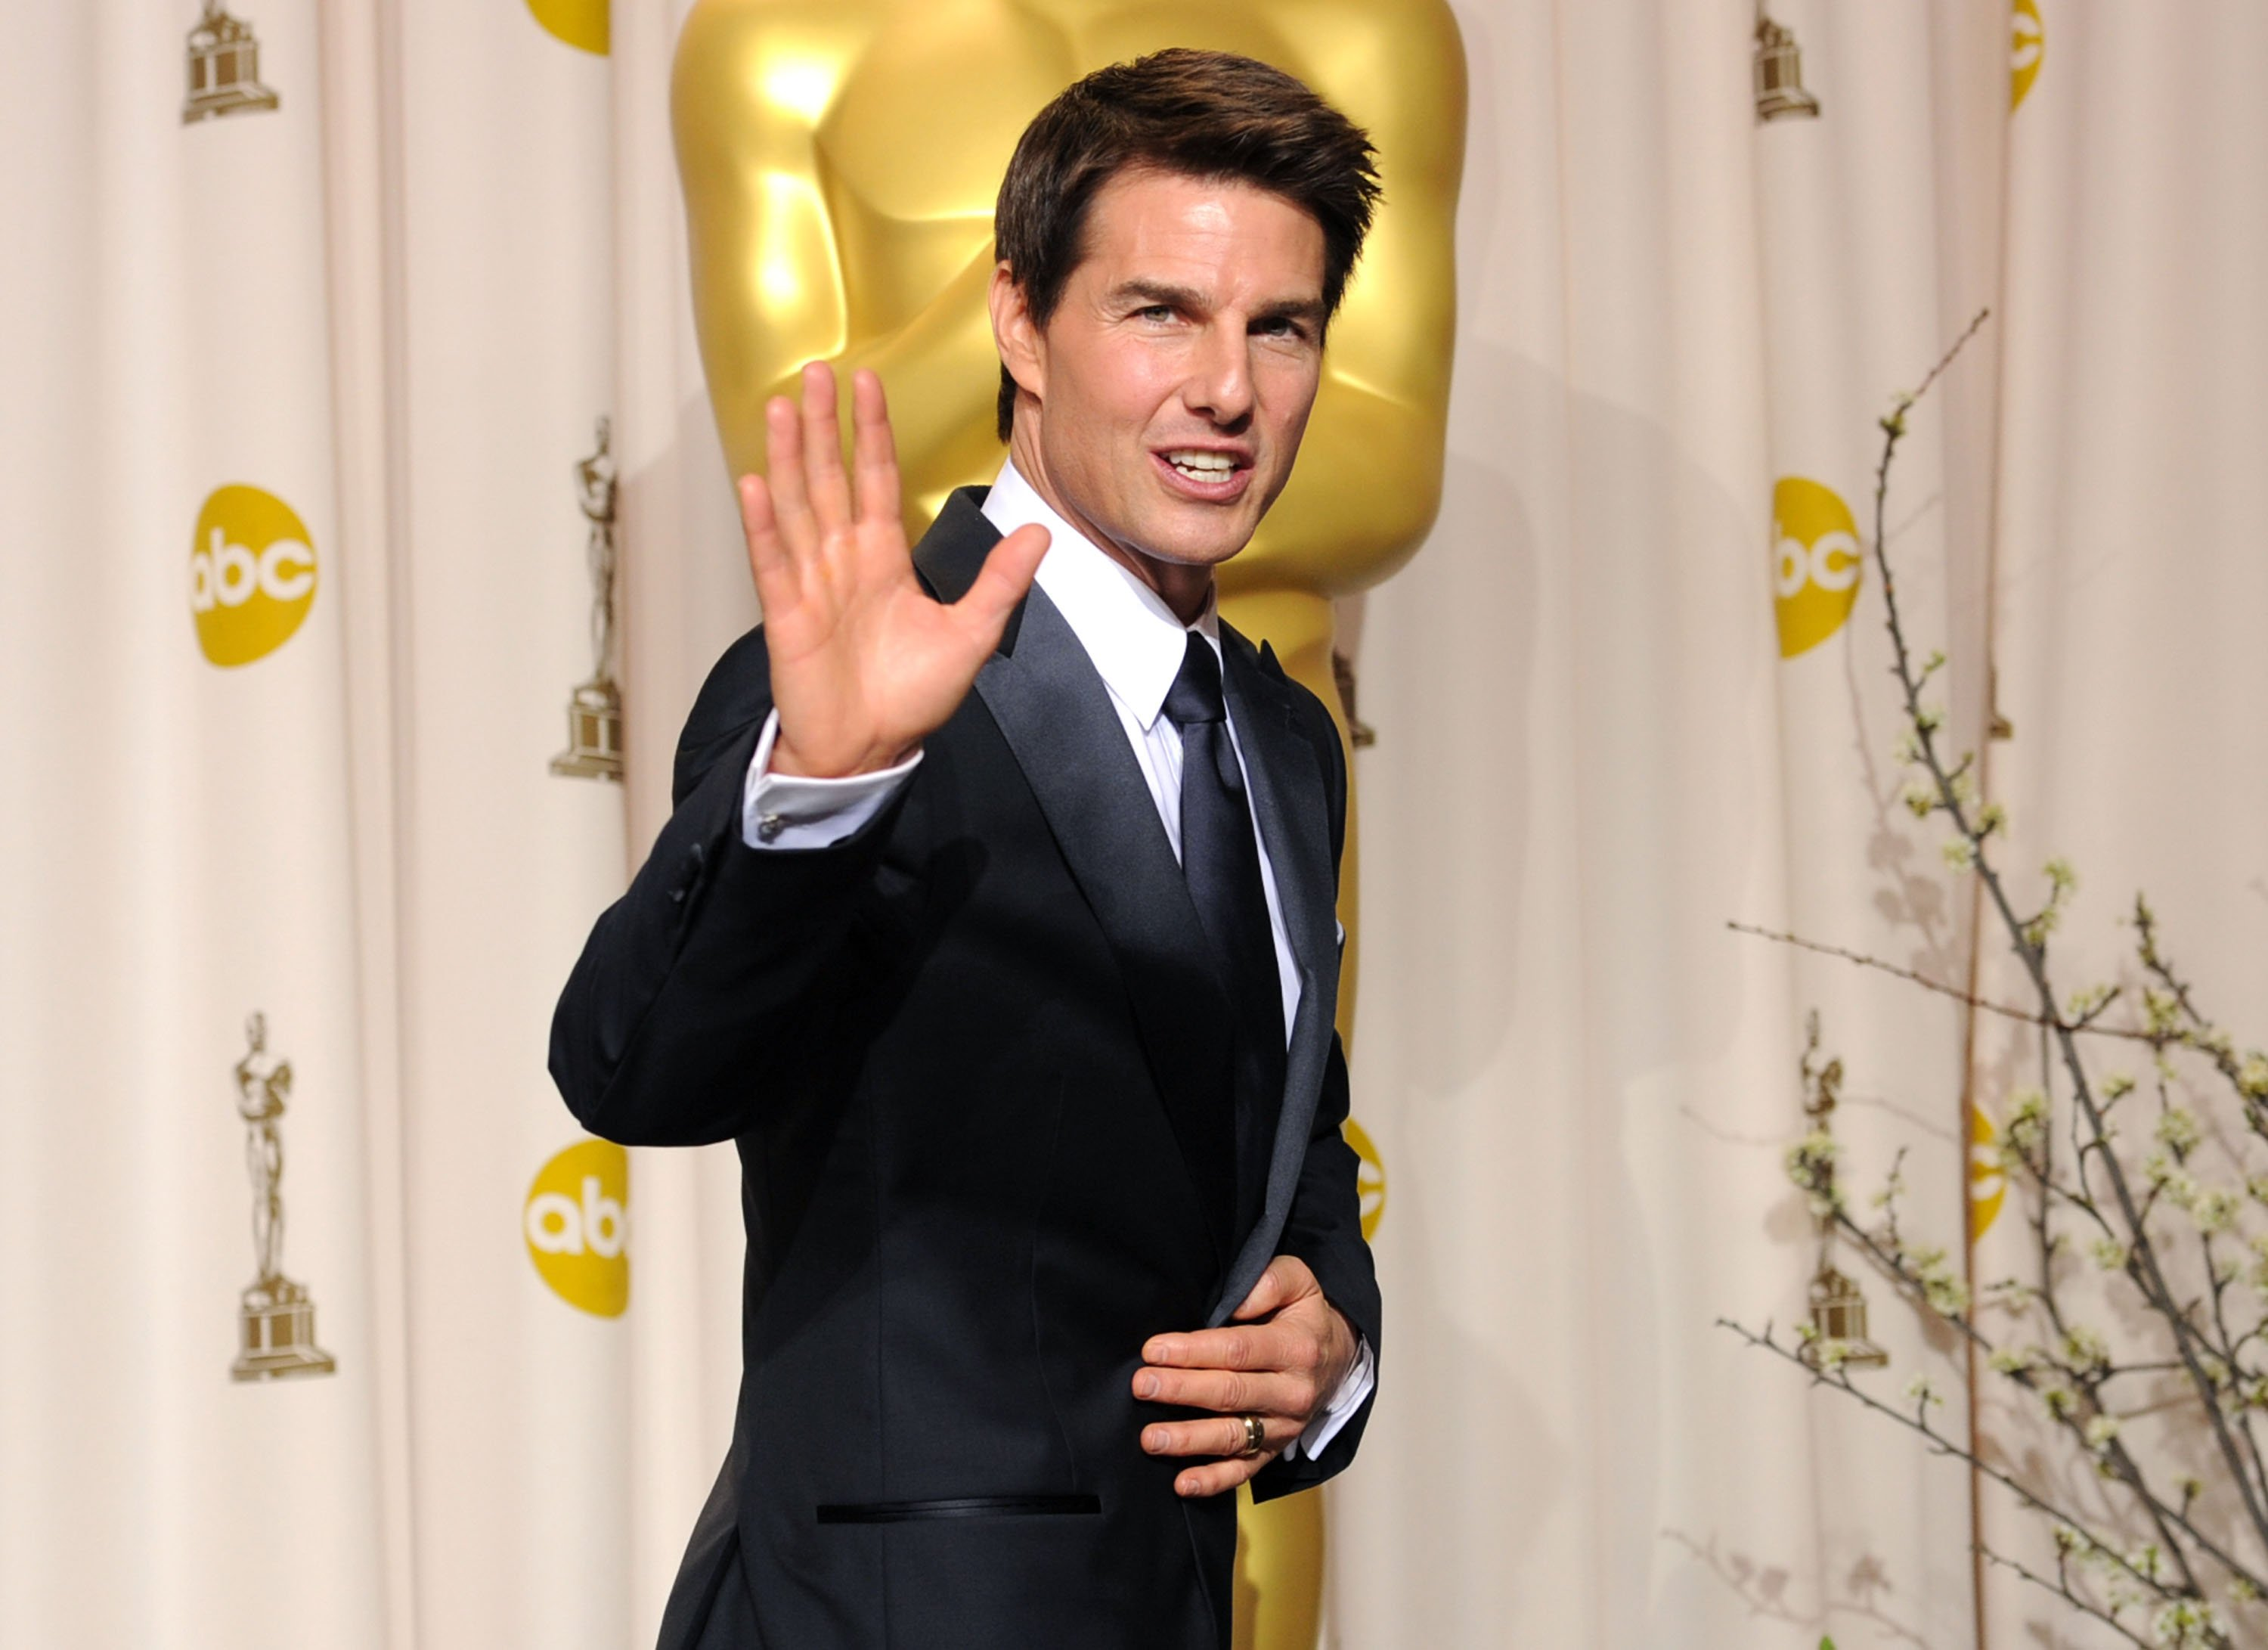 Actor Tom Cruise poses in the press room at the 84th Annual Academy Awards held at the Hollywood & Highland Center on February 26, 2012   Photo: Getty Images